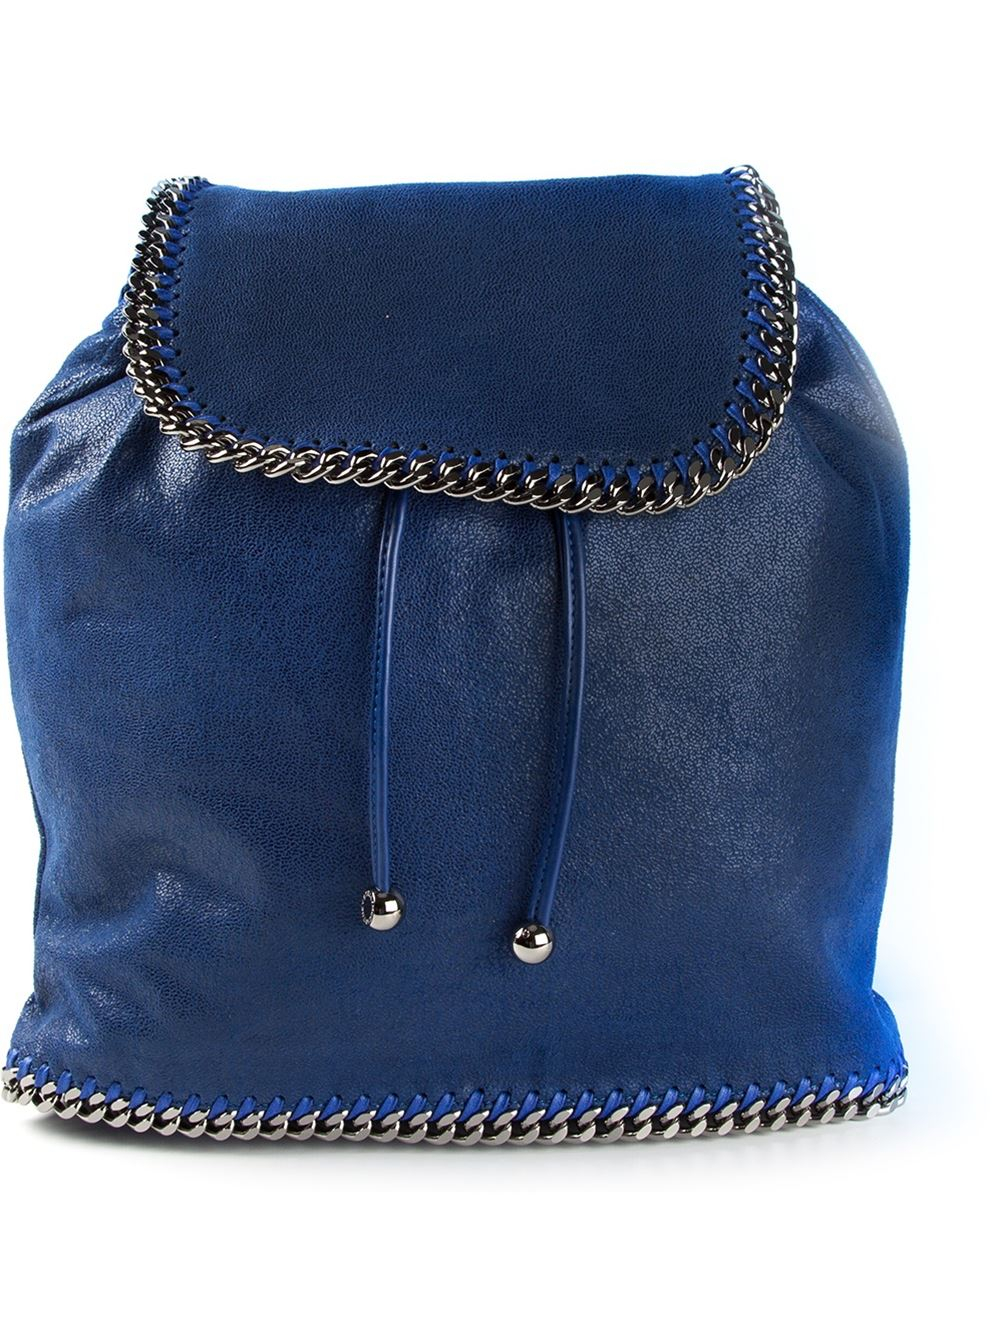 stella mccartney falabella backpack in blue lyst. Black Bedroom Furniture Sets. Home Design Ideas